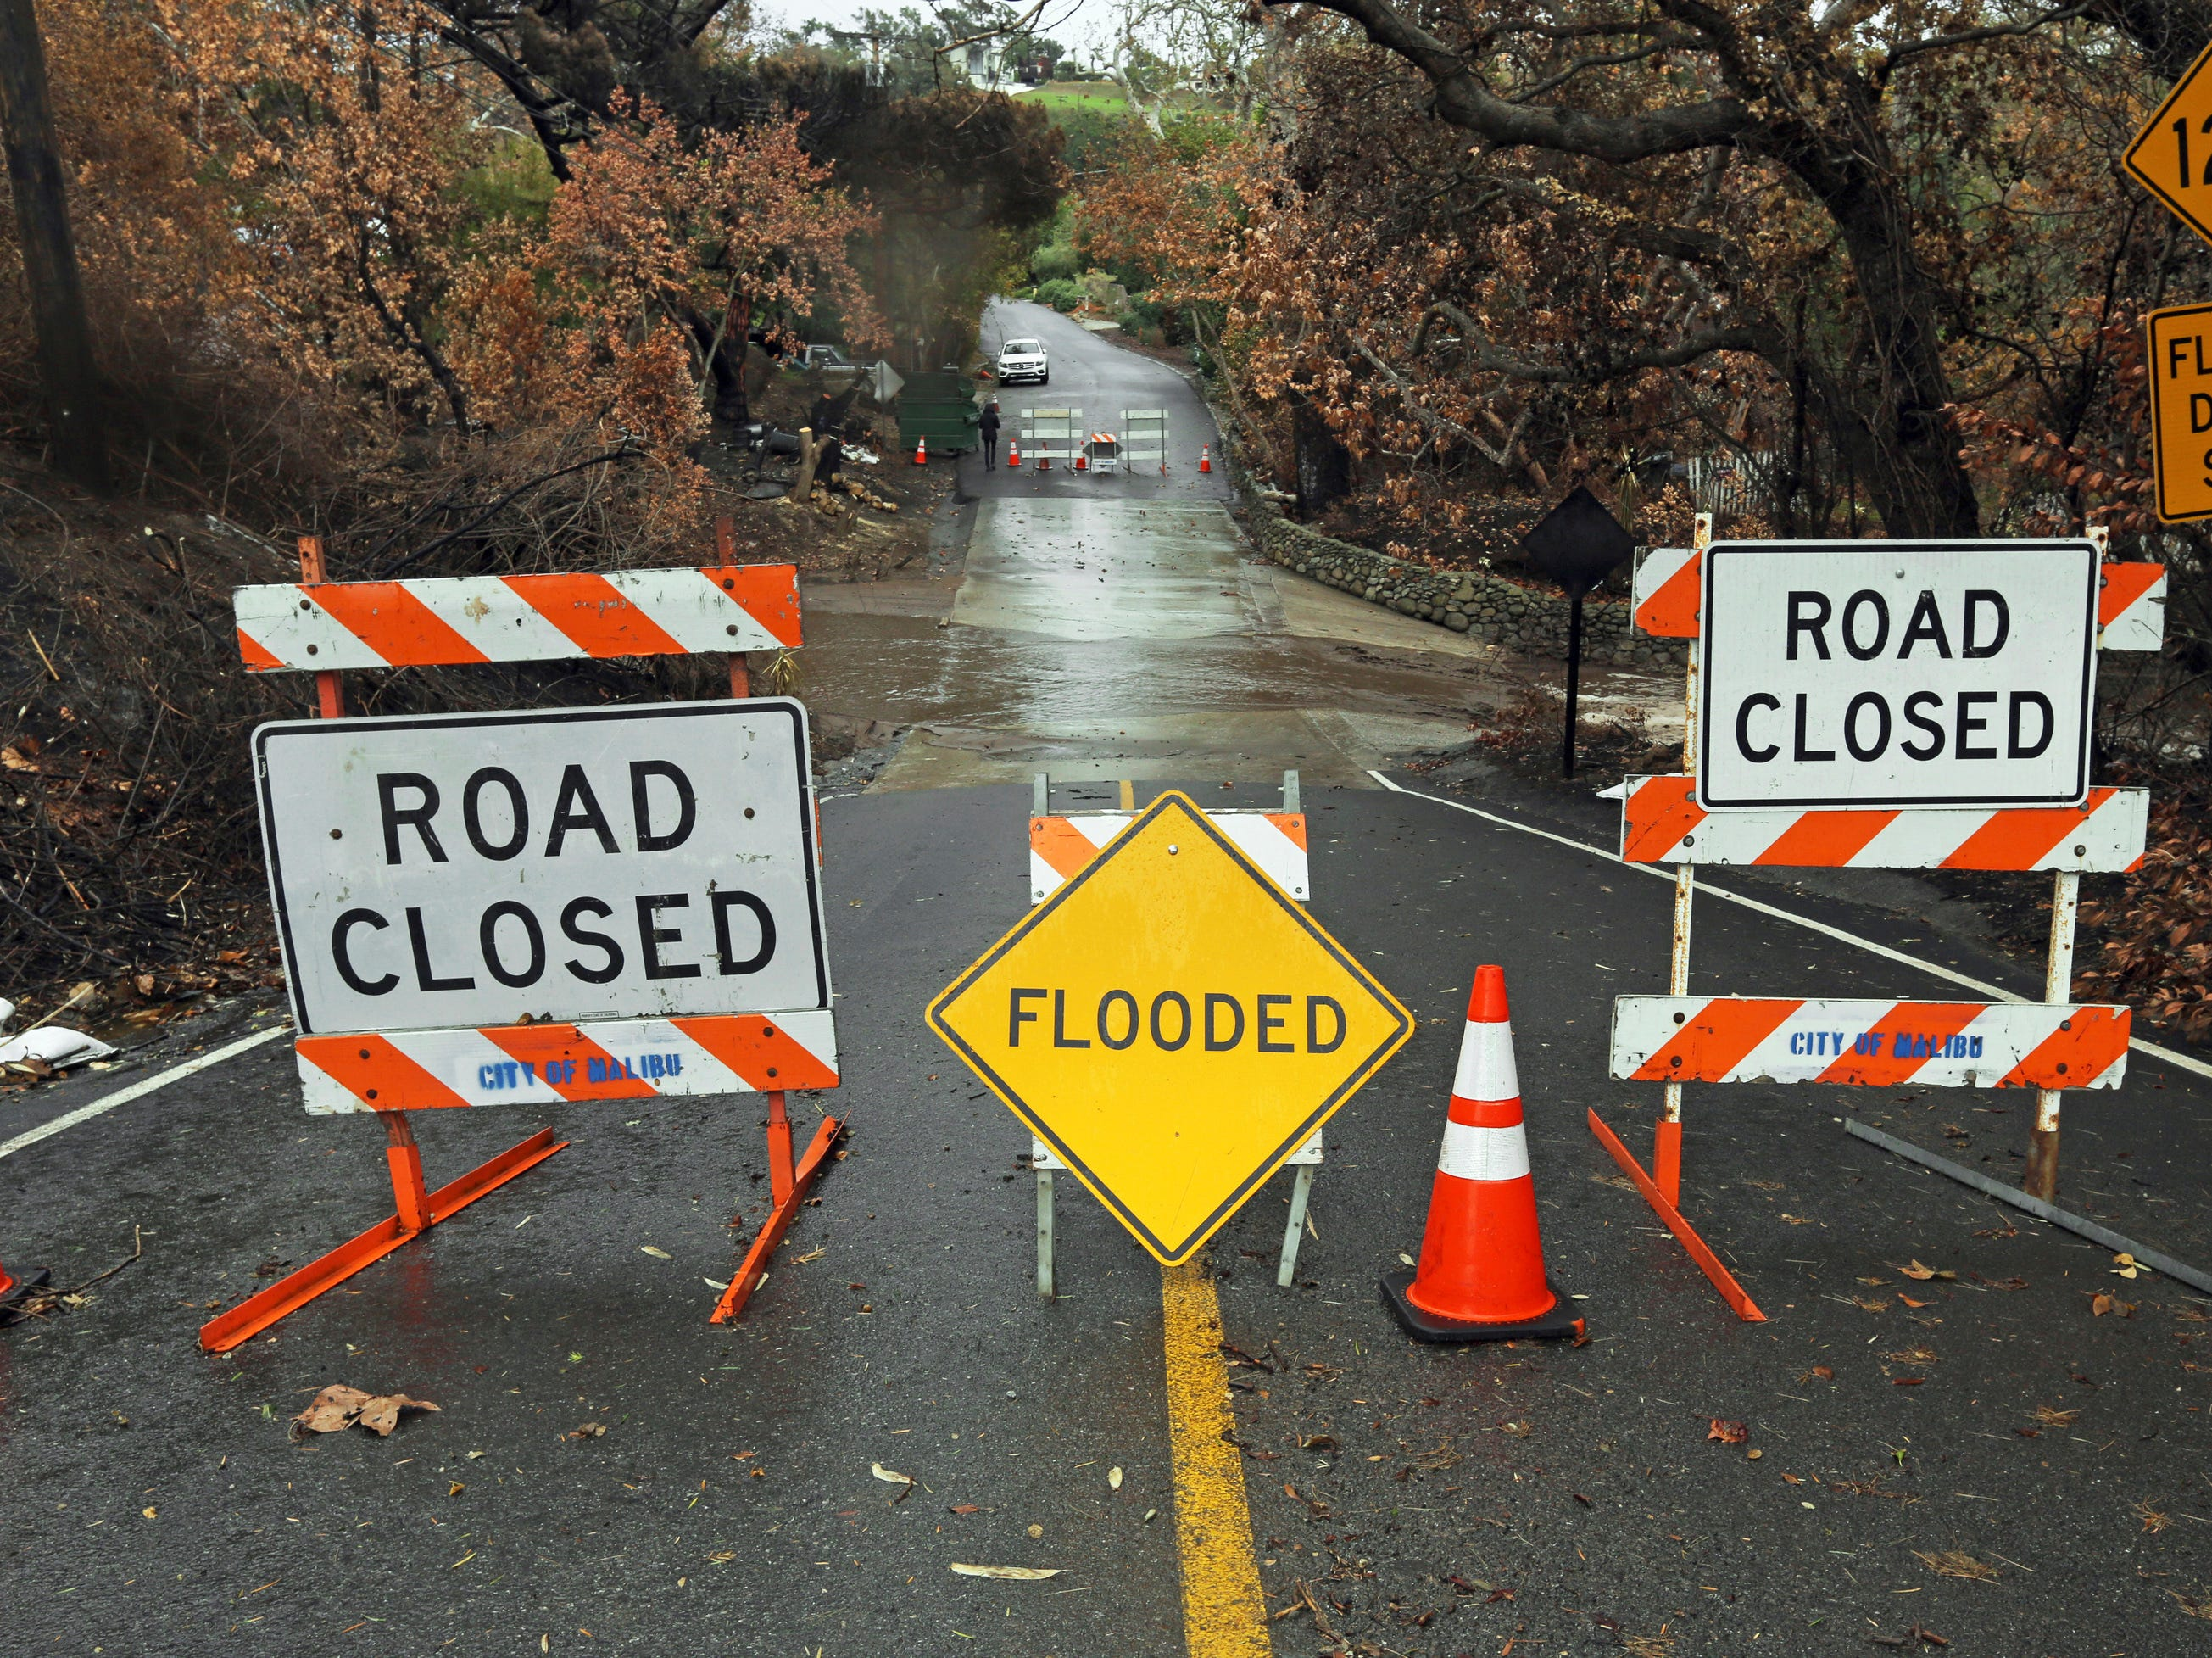 A road is closed due to flooding in an area burned by the Woolsey Fire in Malibu, Calif., Thursday, Dec. 6, 2018.